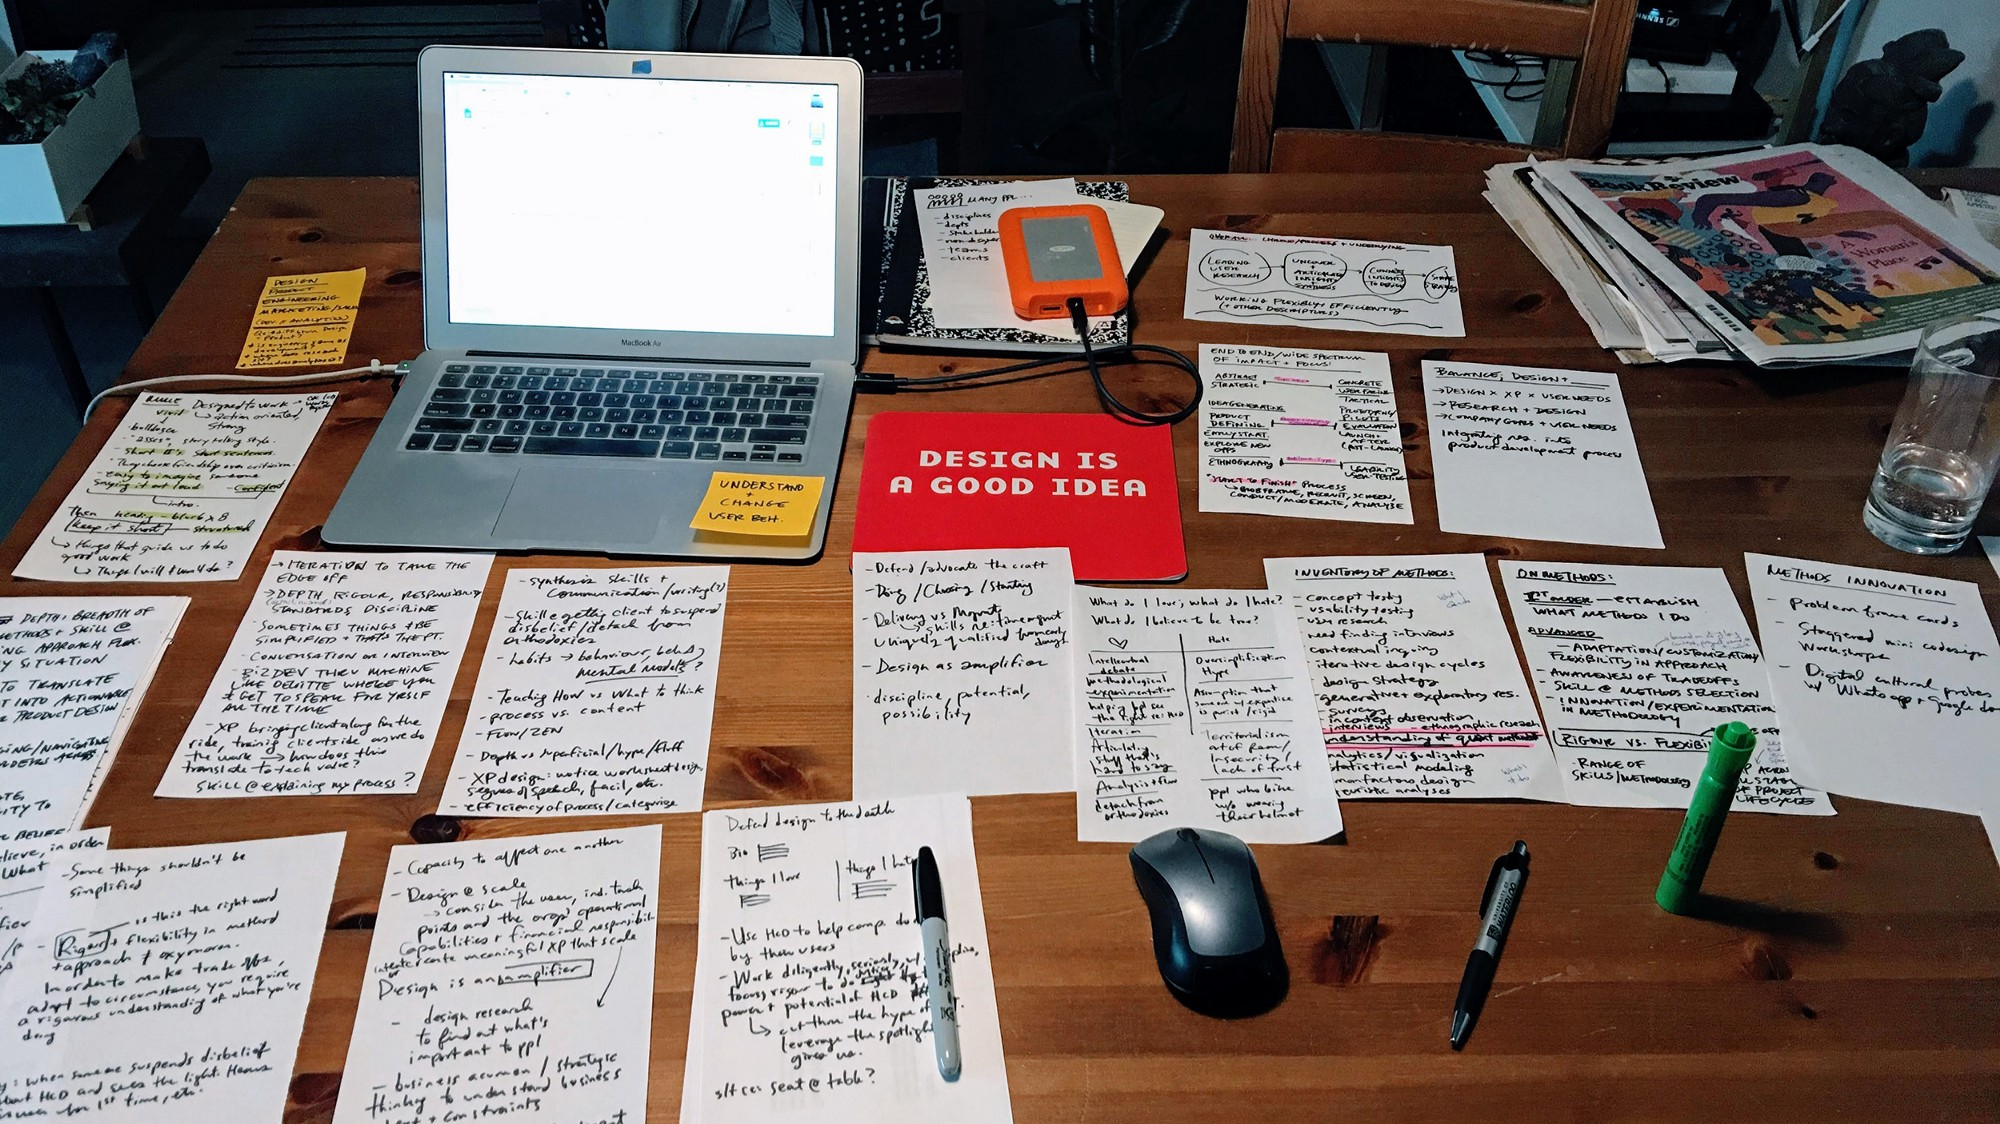 An open laptop sits on a wooden table covered with half sheets of handwritten notes